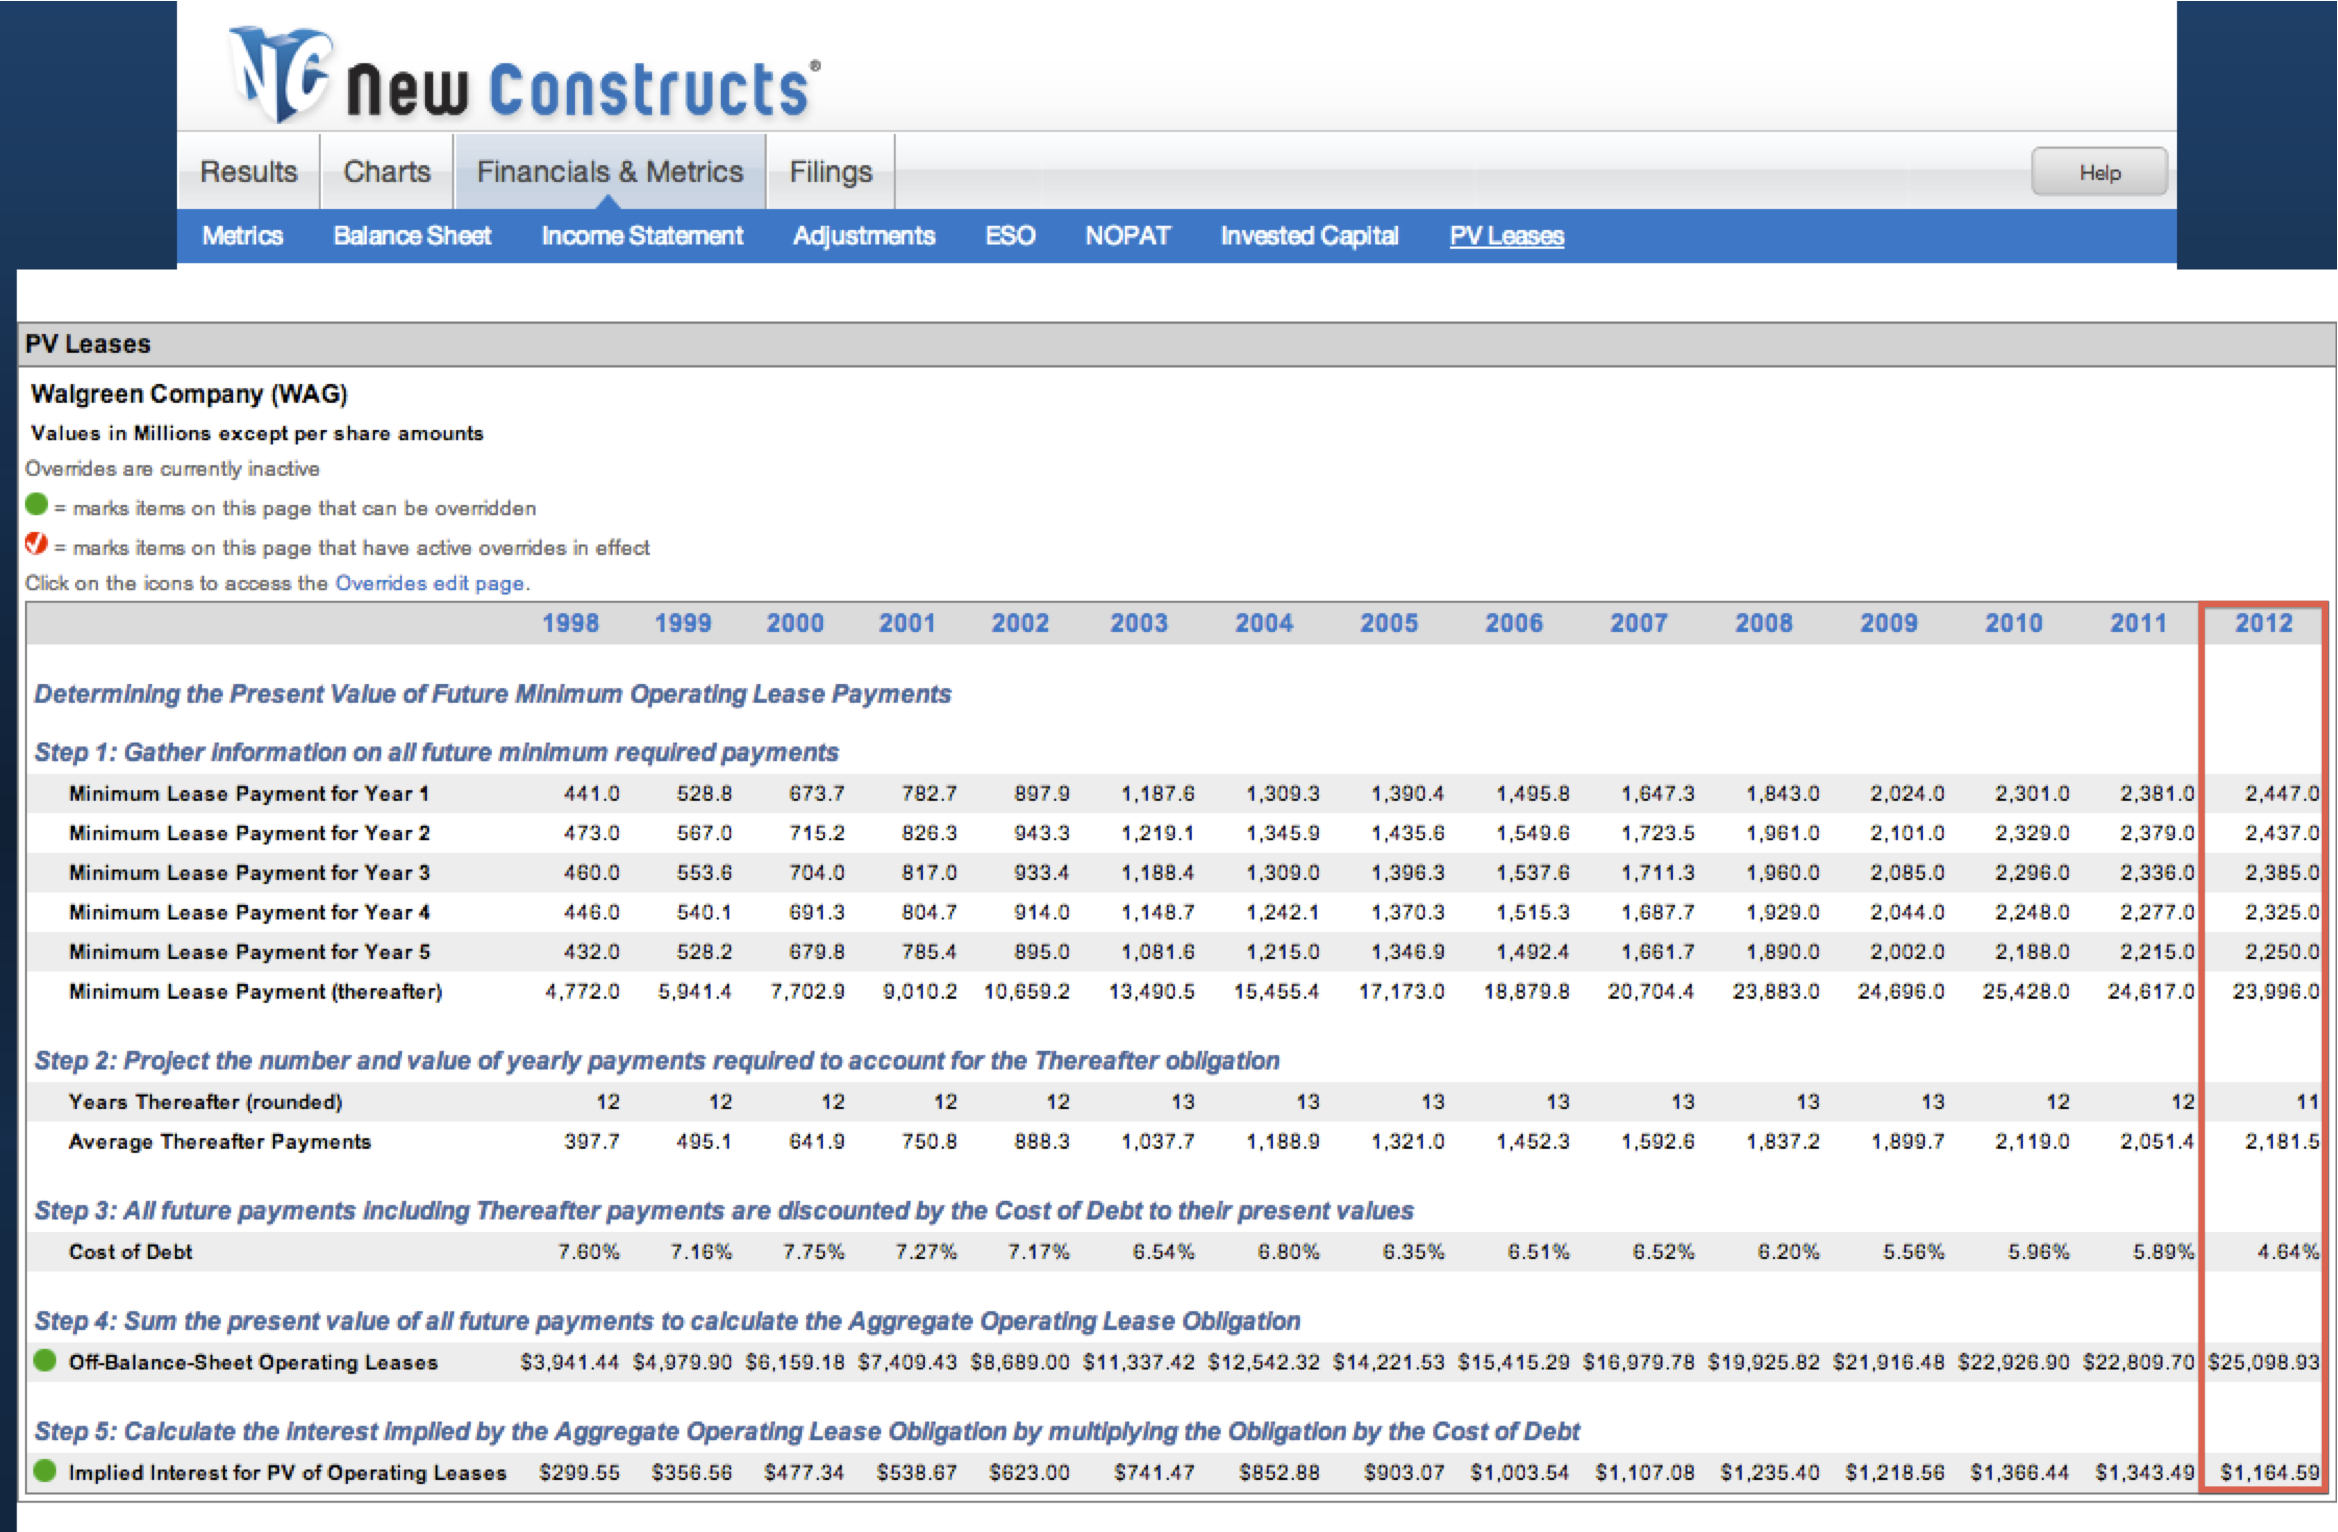 Off-Balance Sheet Debt - Invested Capital Adjustment - New Constructs